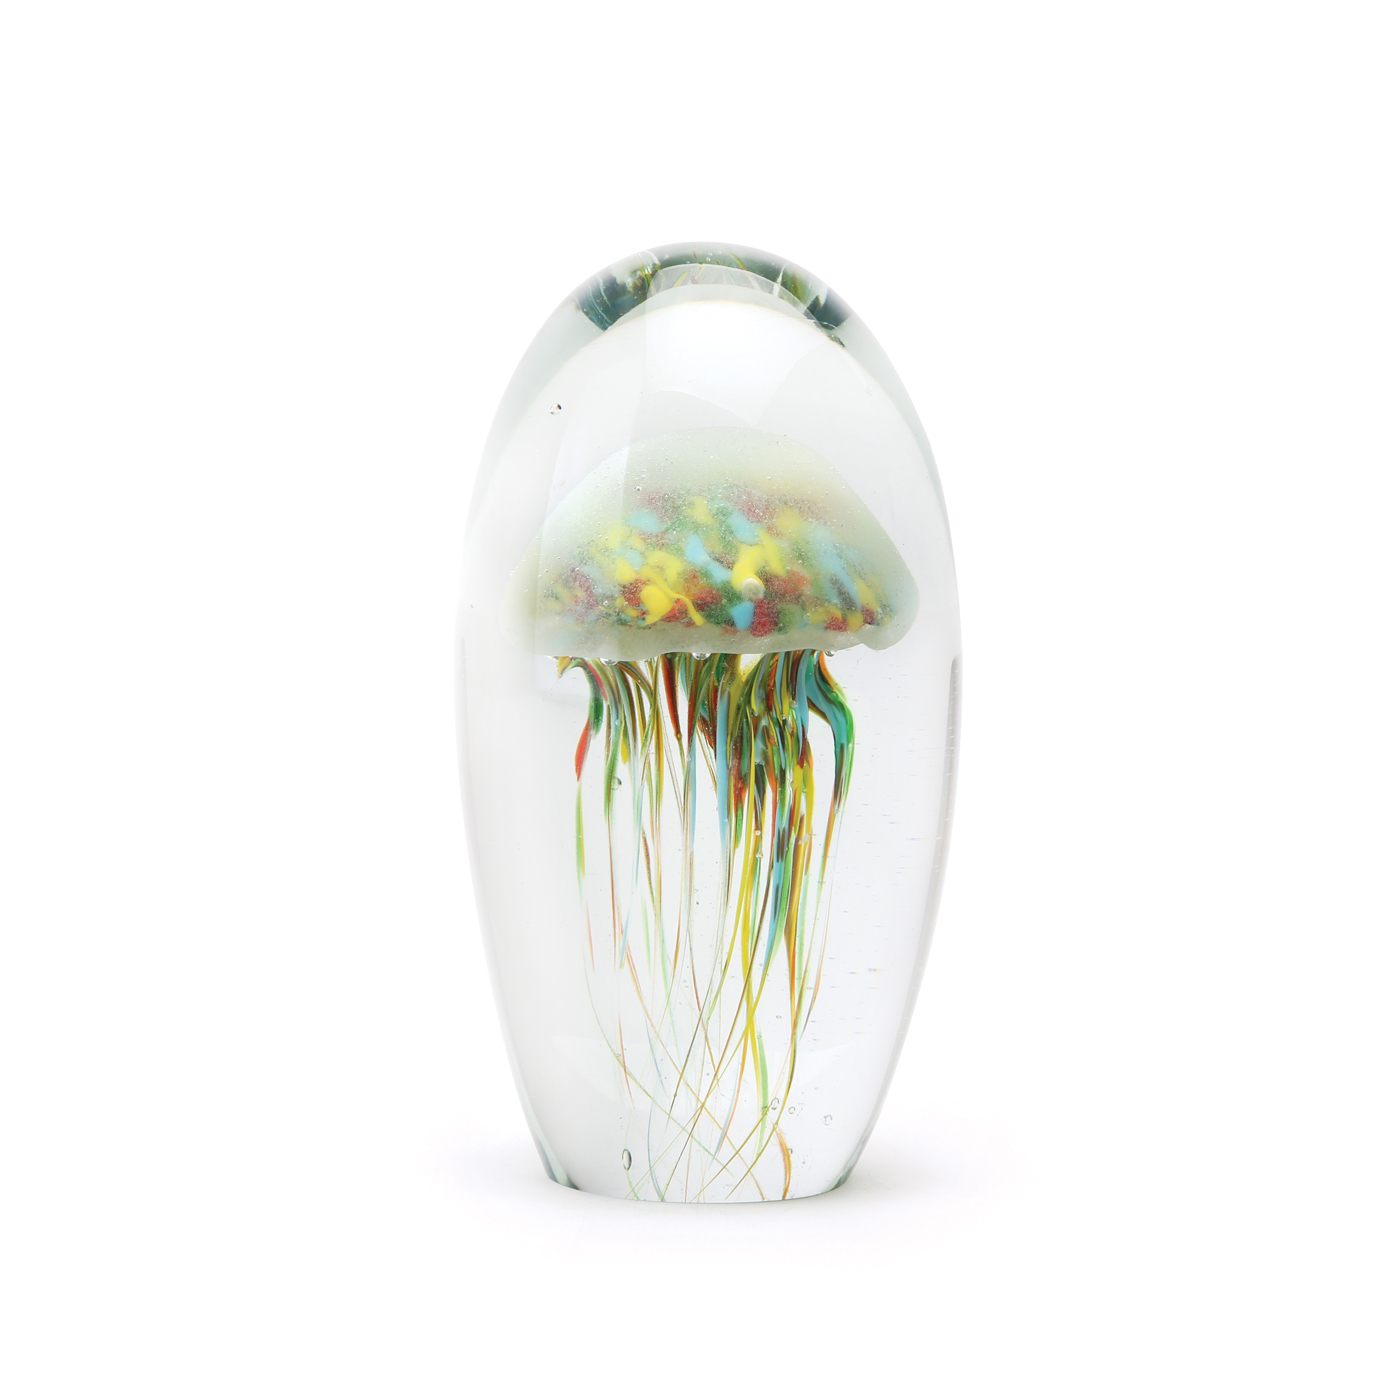 Moonlight short jelly object rainbow plantation for Jellyfish chair design within reach